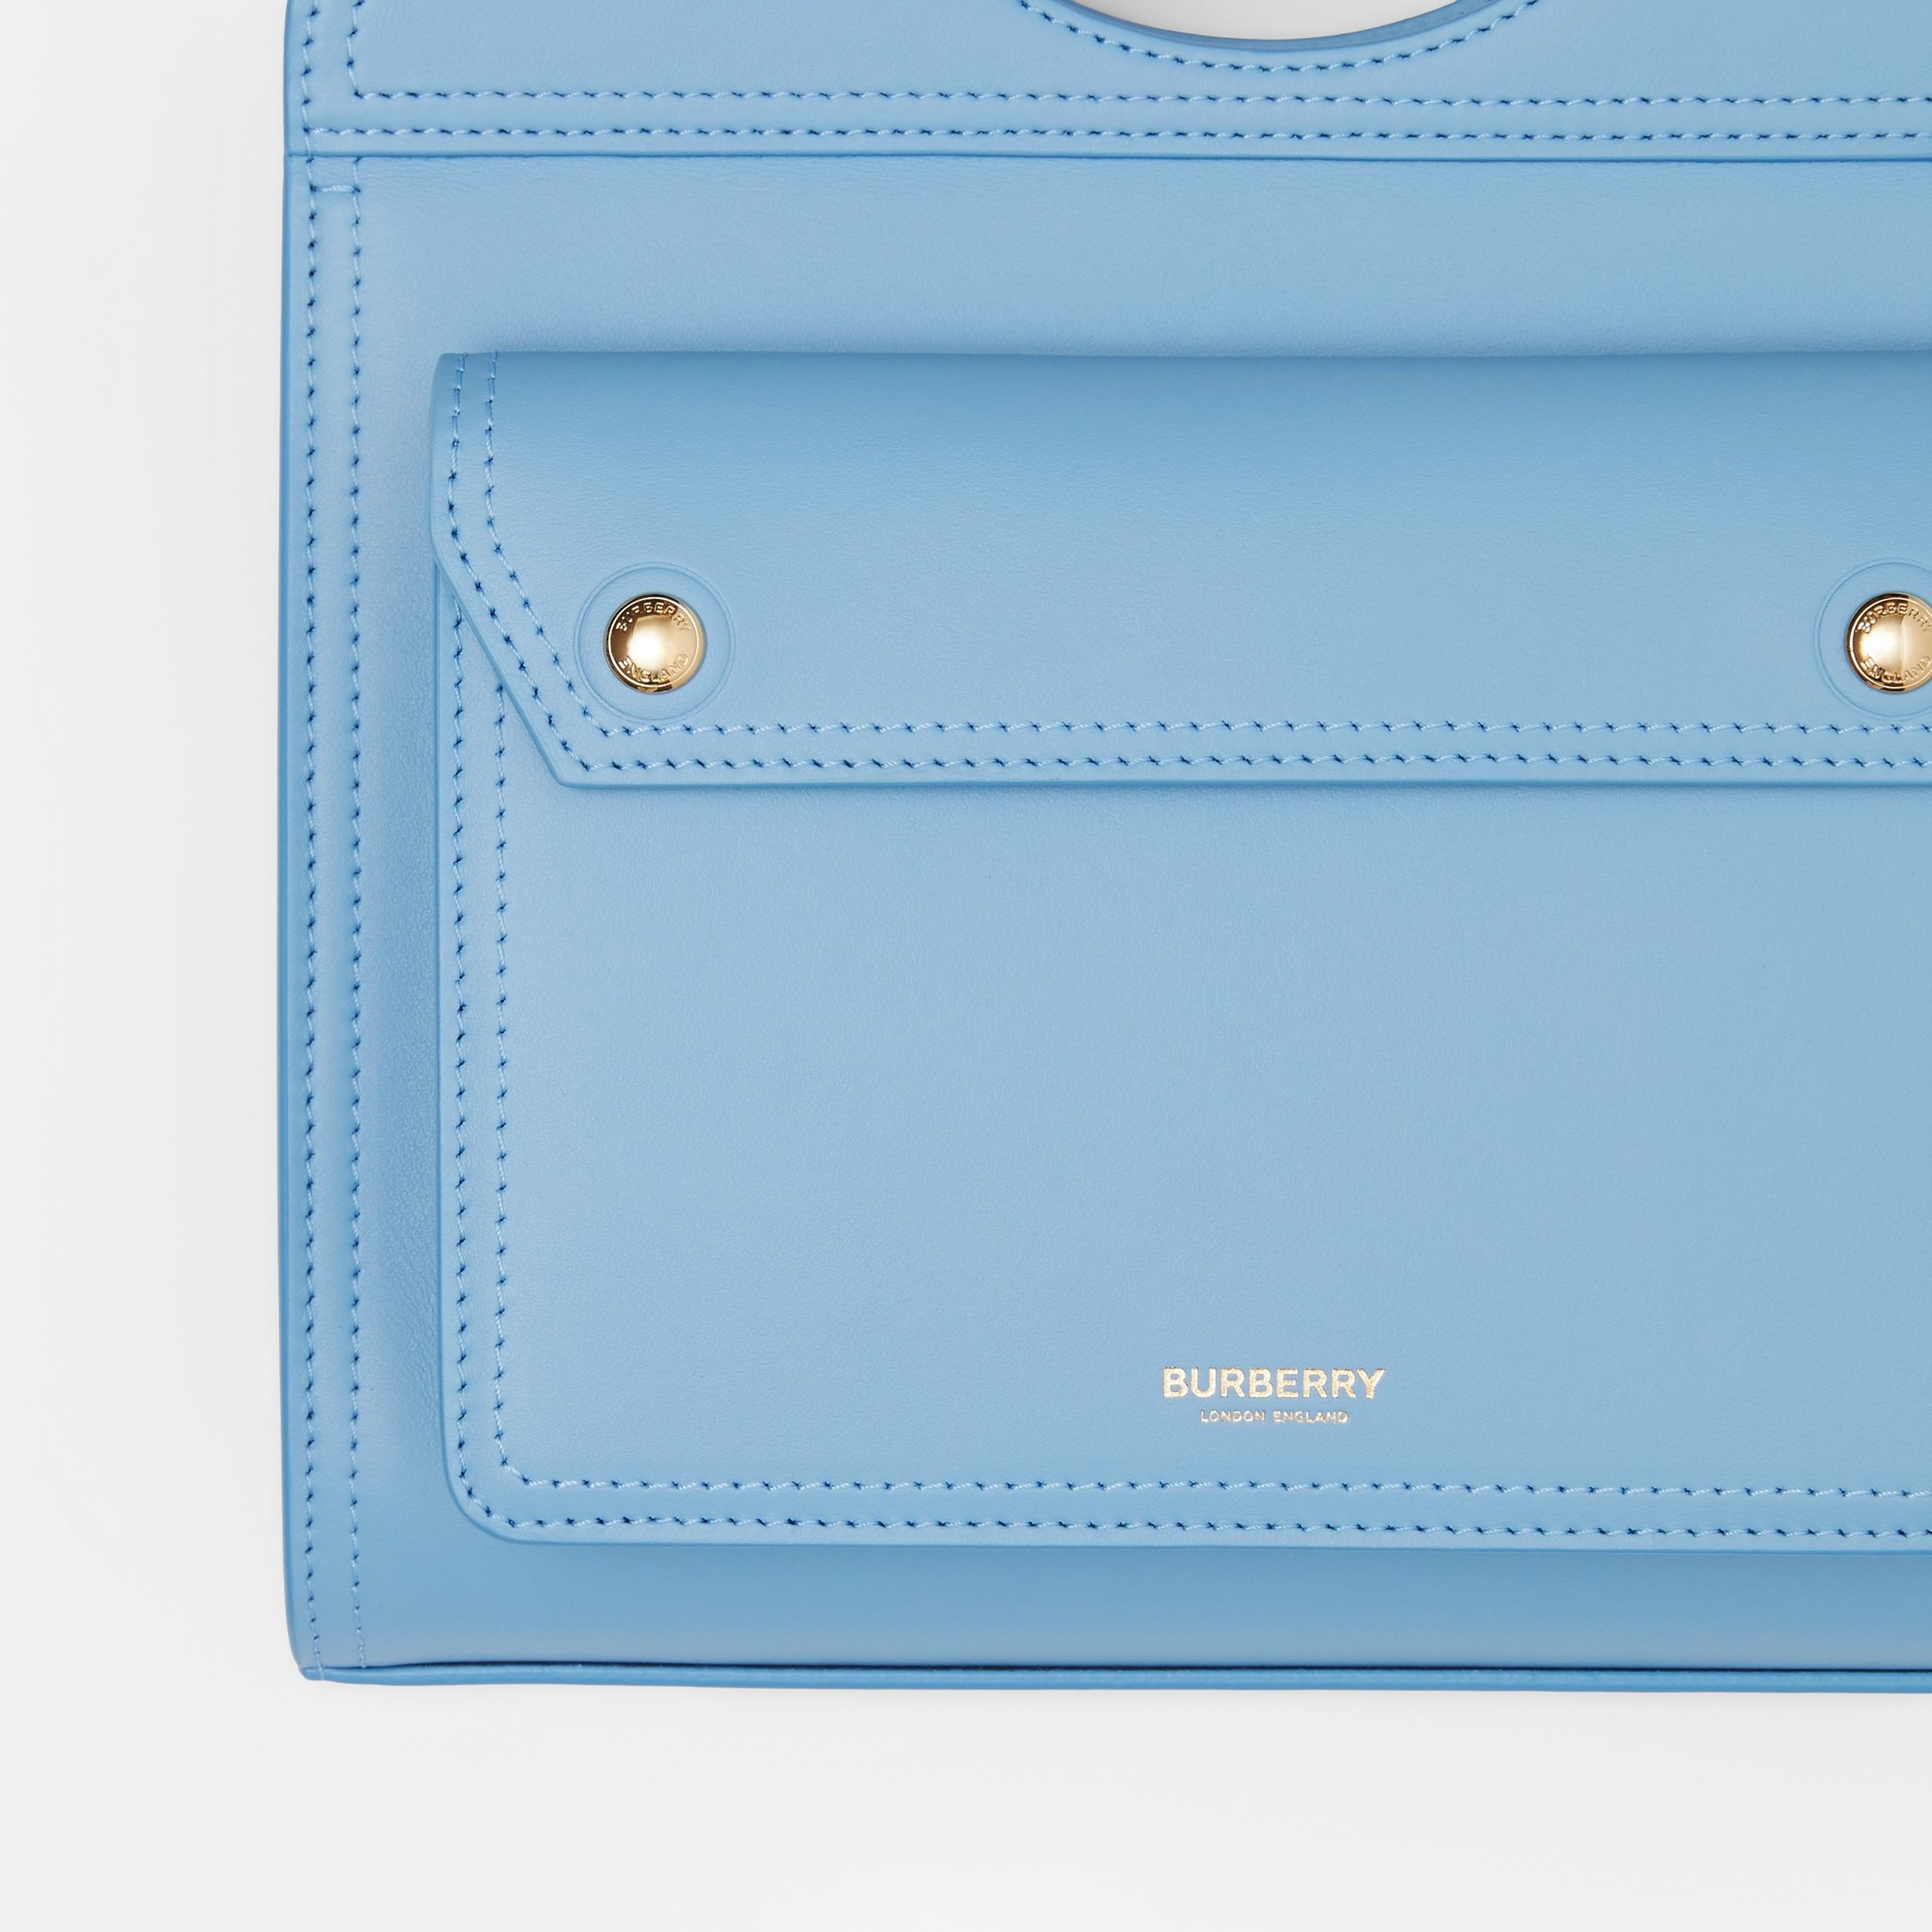 Mini Leather Pocket Bag in Blue Topaz - Women | Burberry Singapore - 2